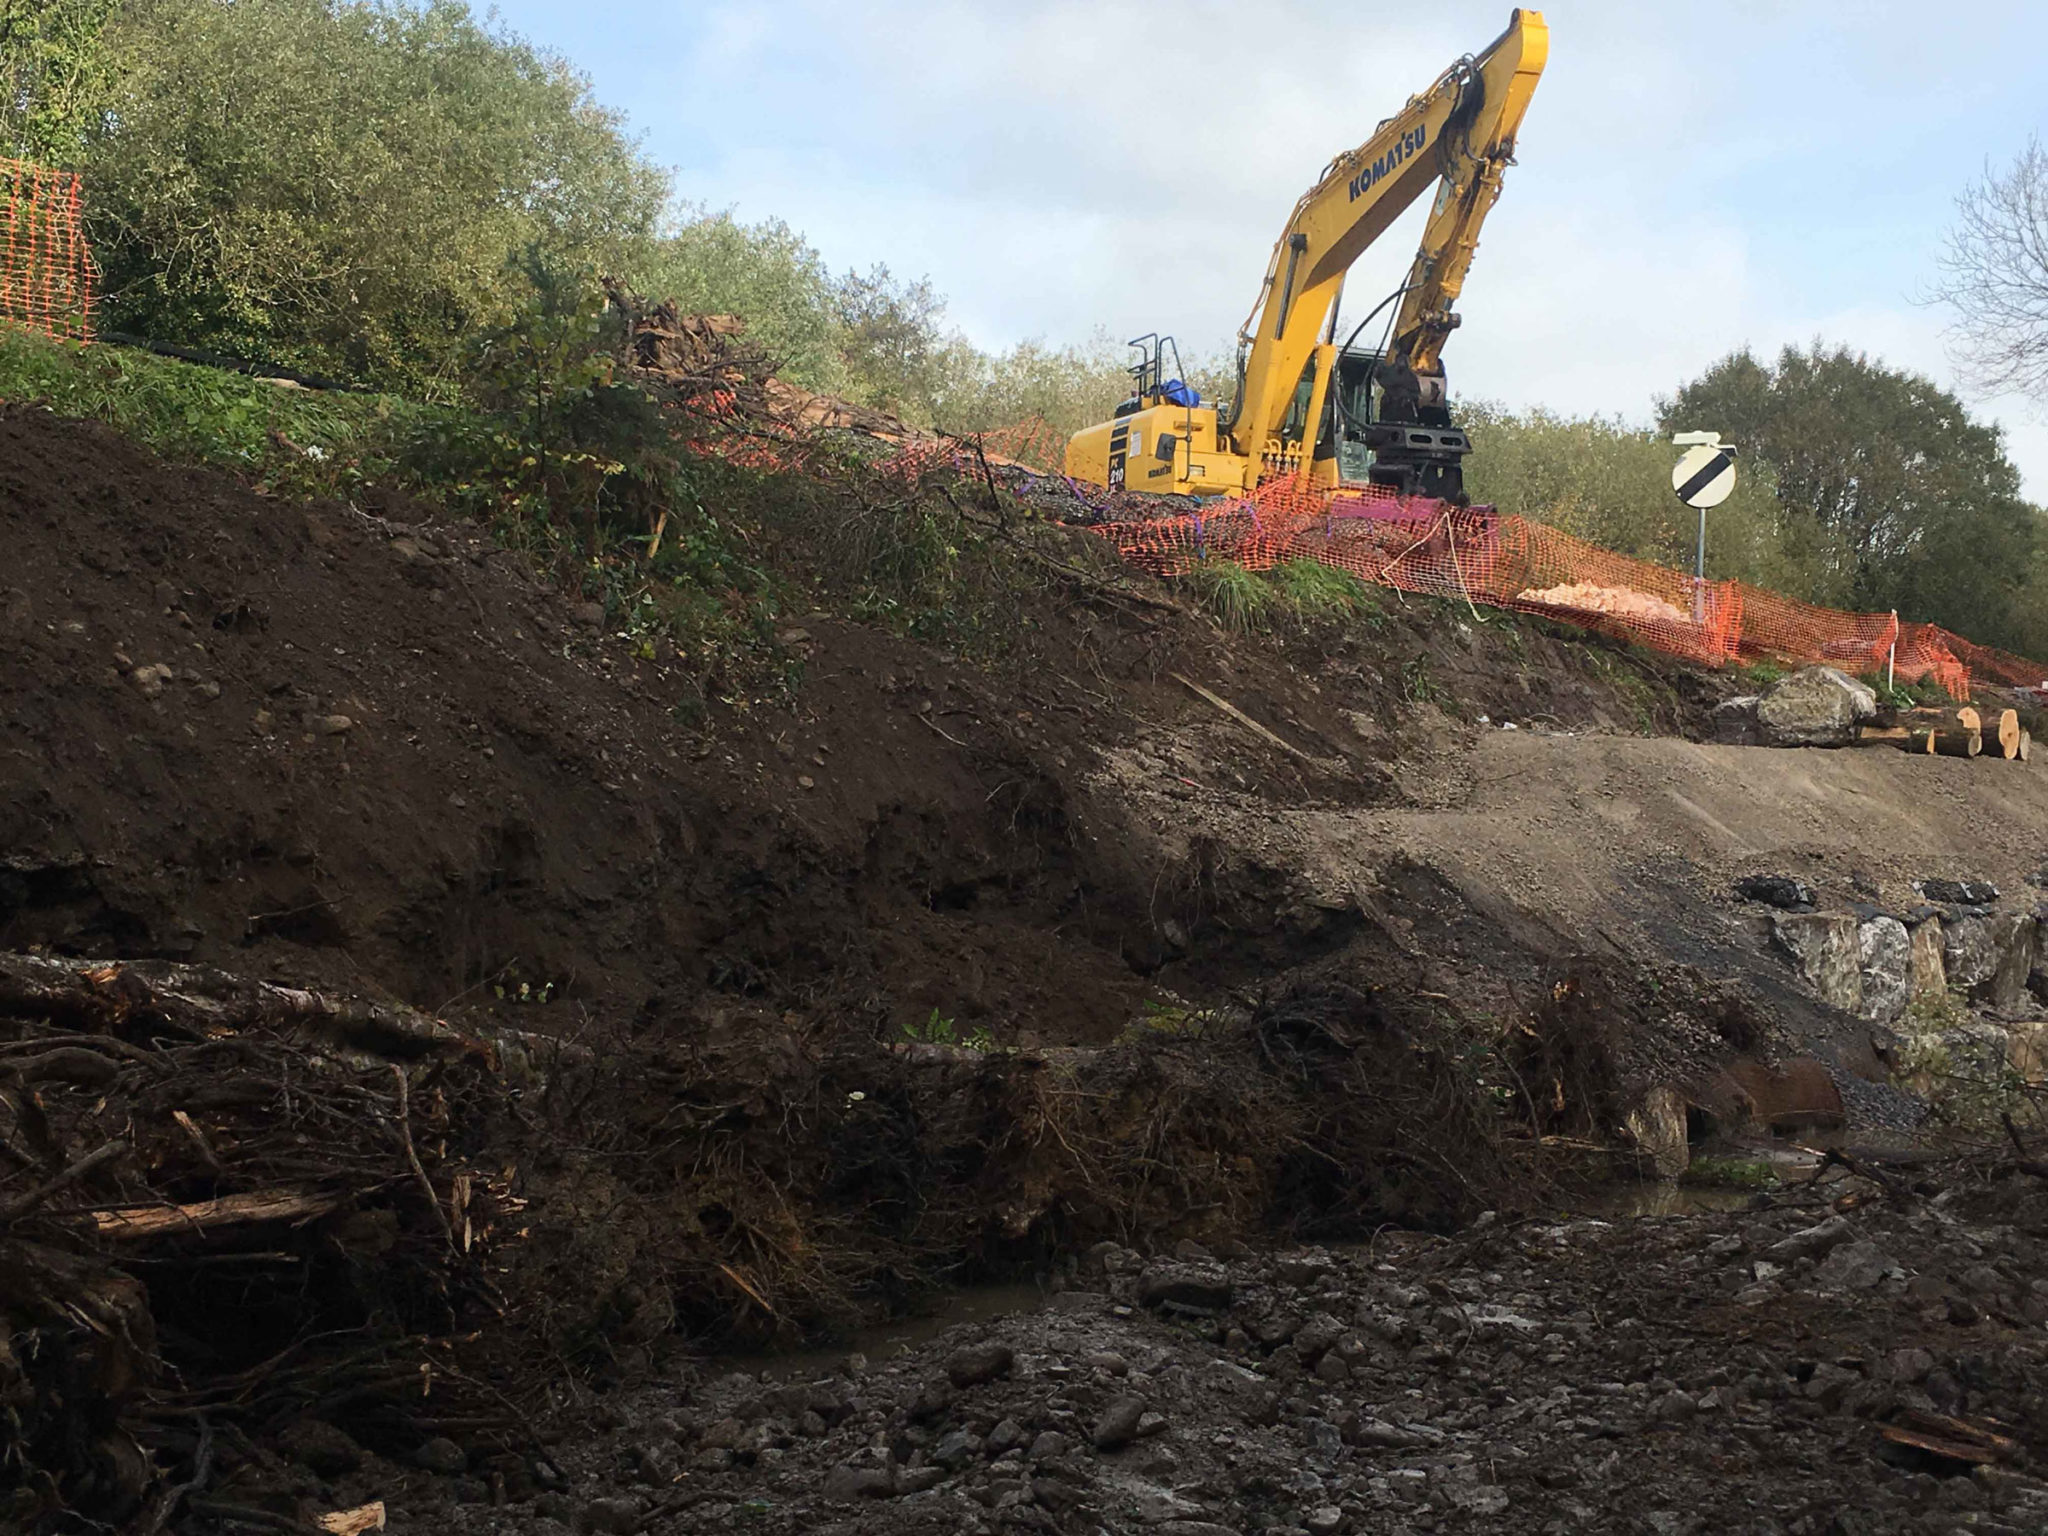 Works were required to control erosion and prevent damage to critical highway infrastructure.